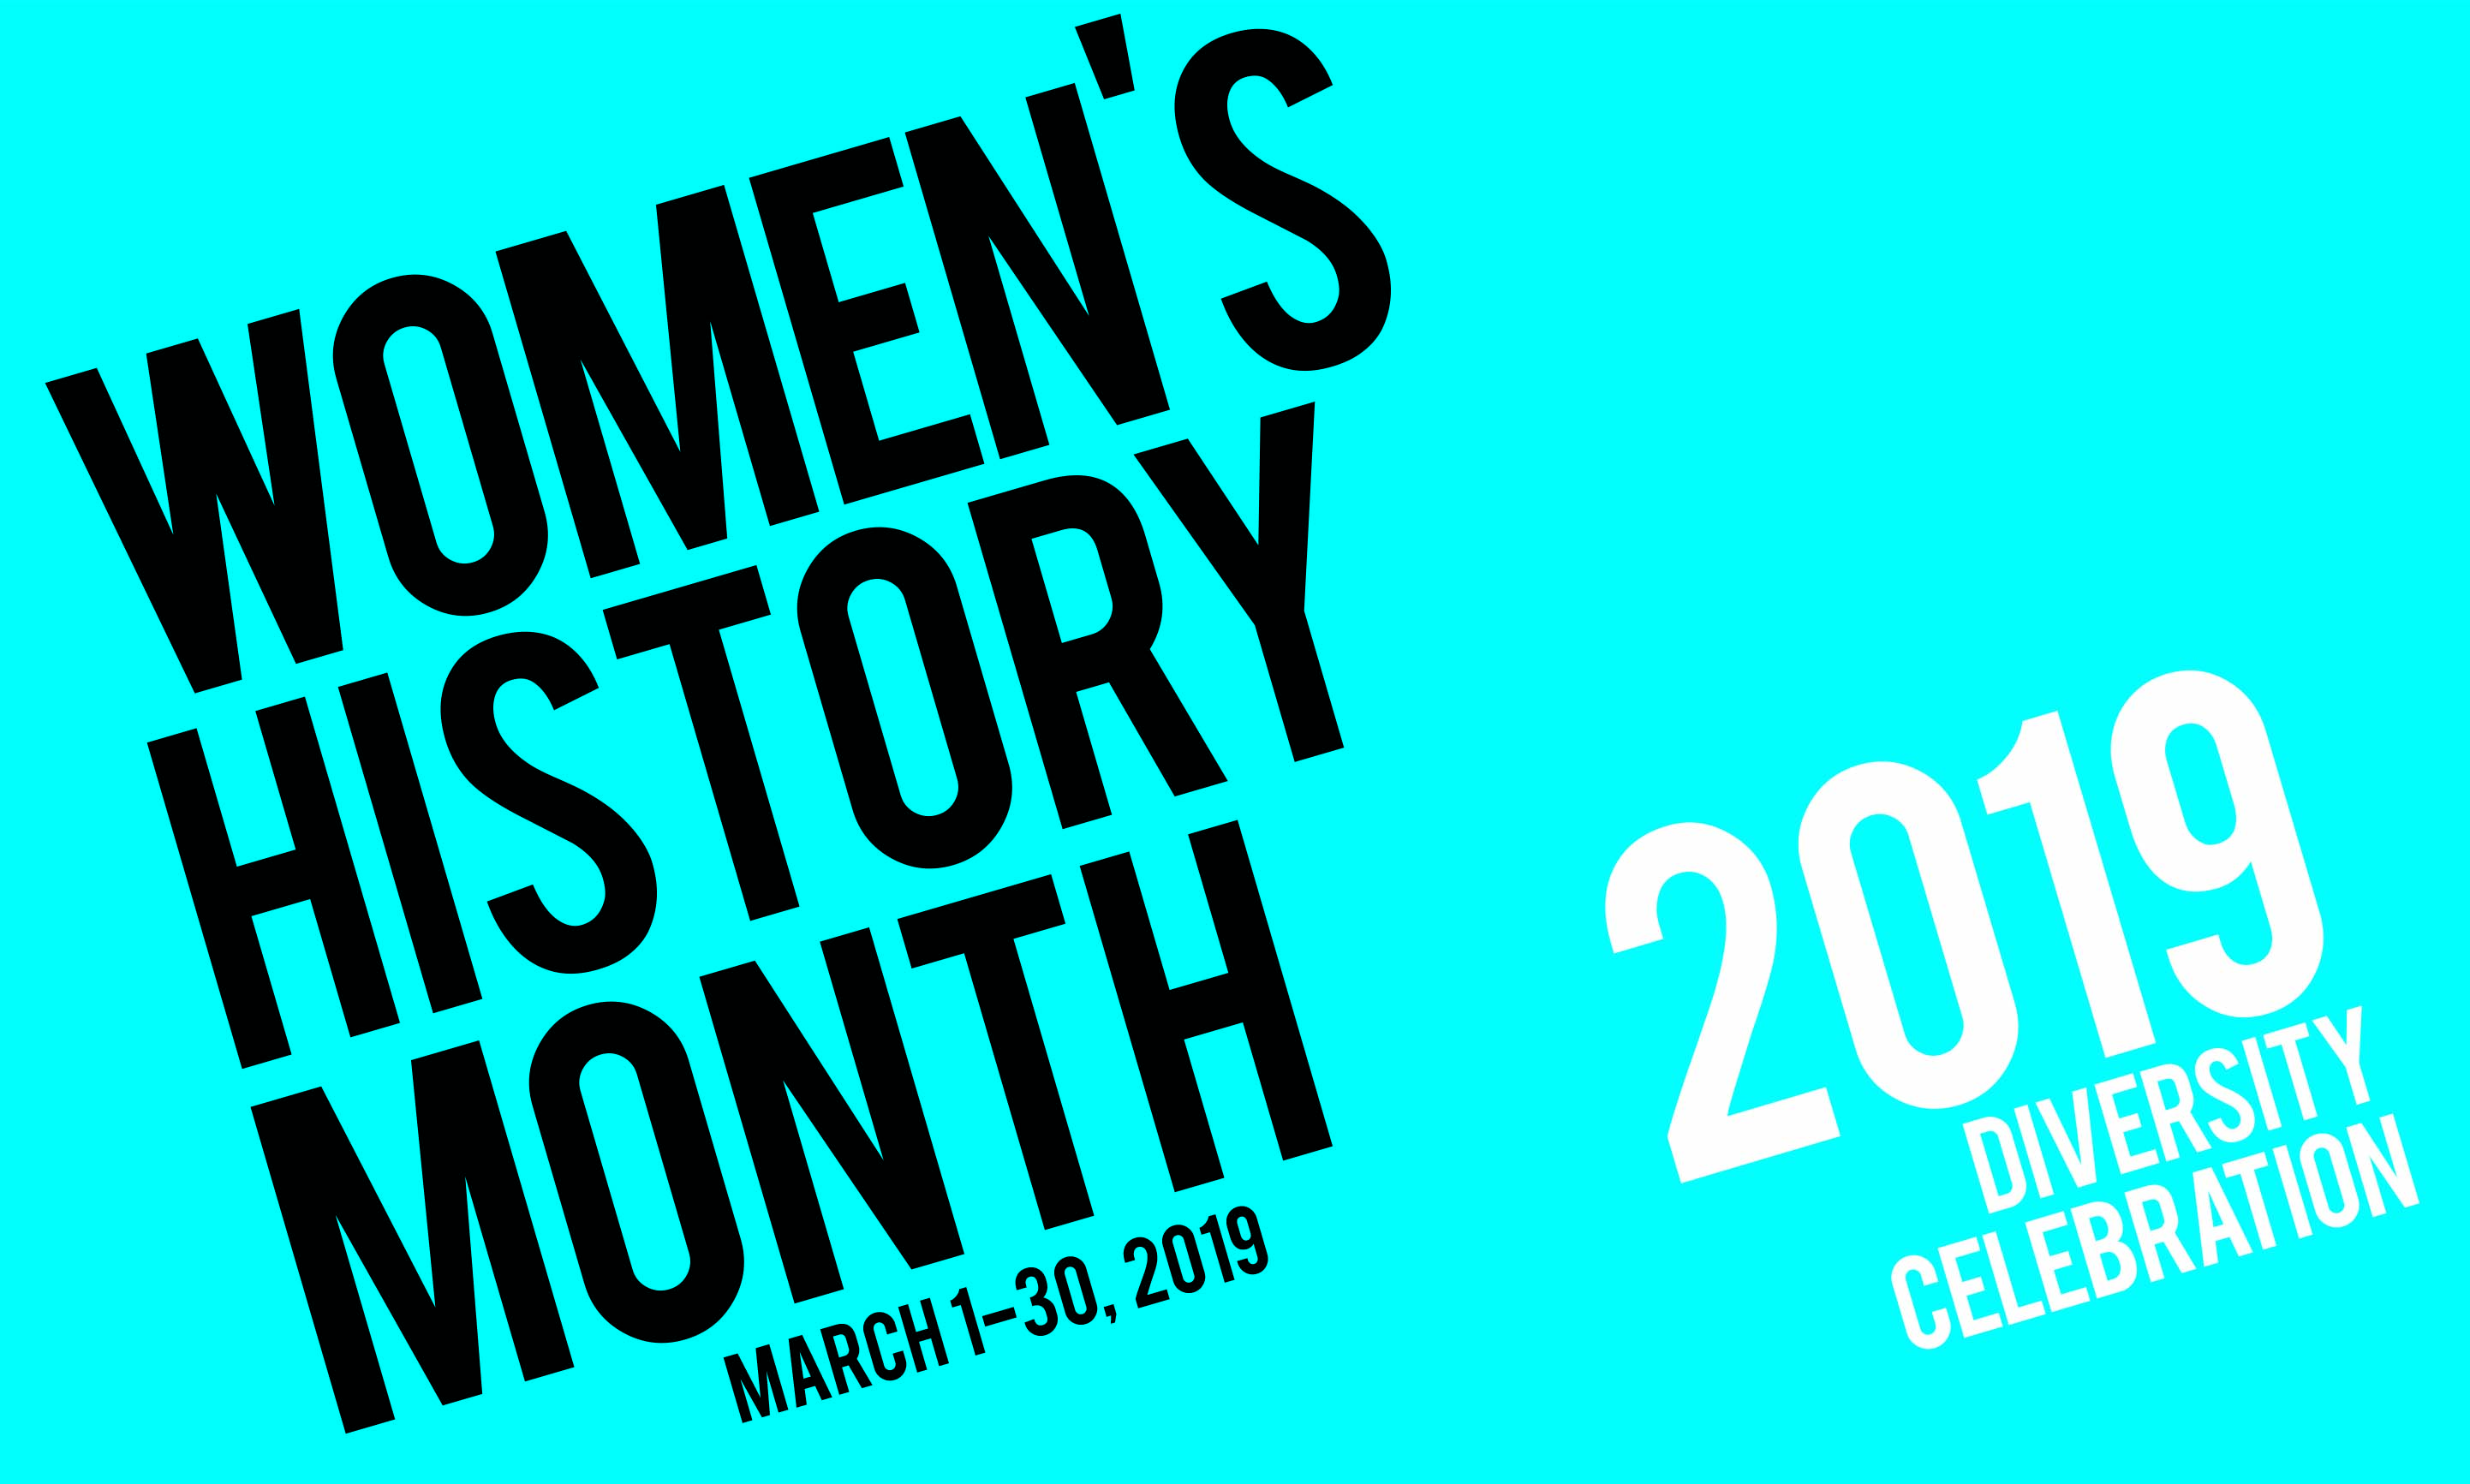 poster detail says WOMEN'S HISTORY MONTH 2019